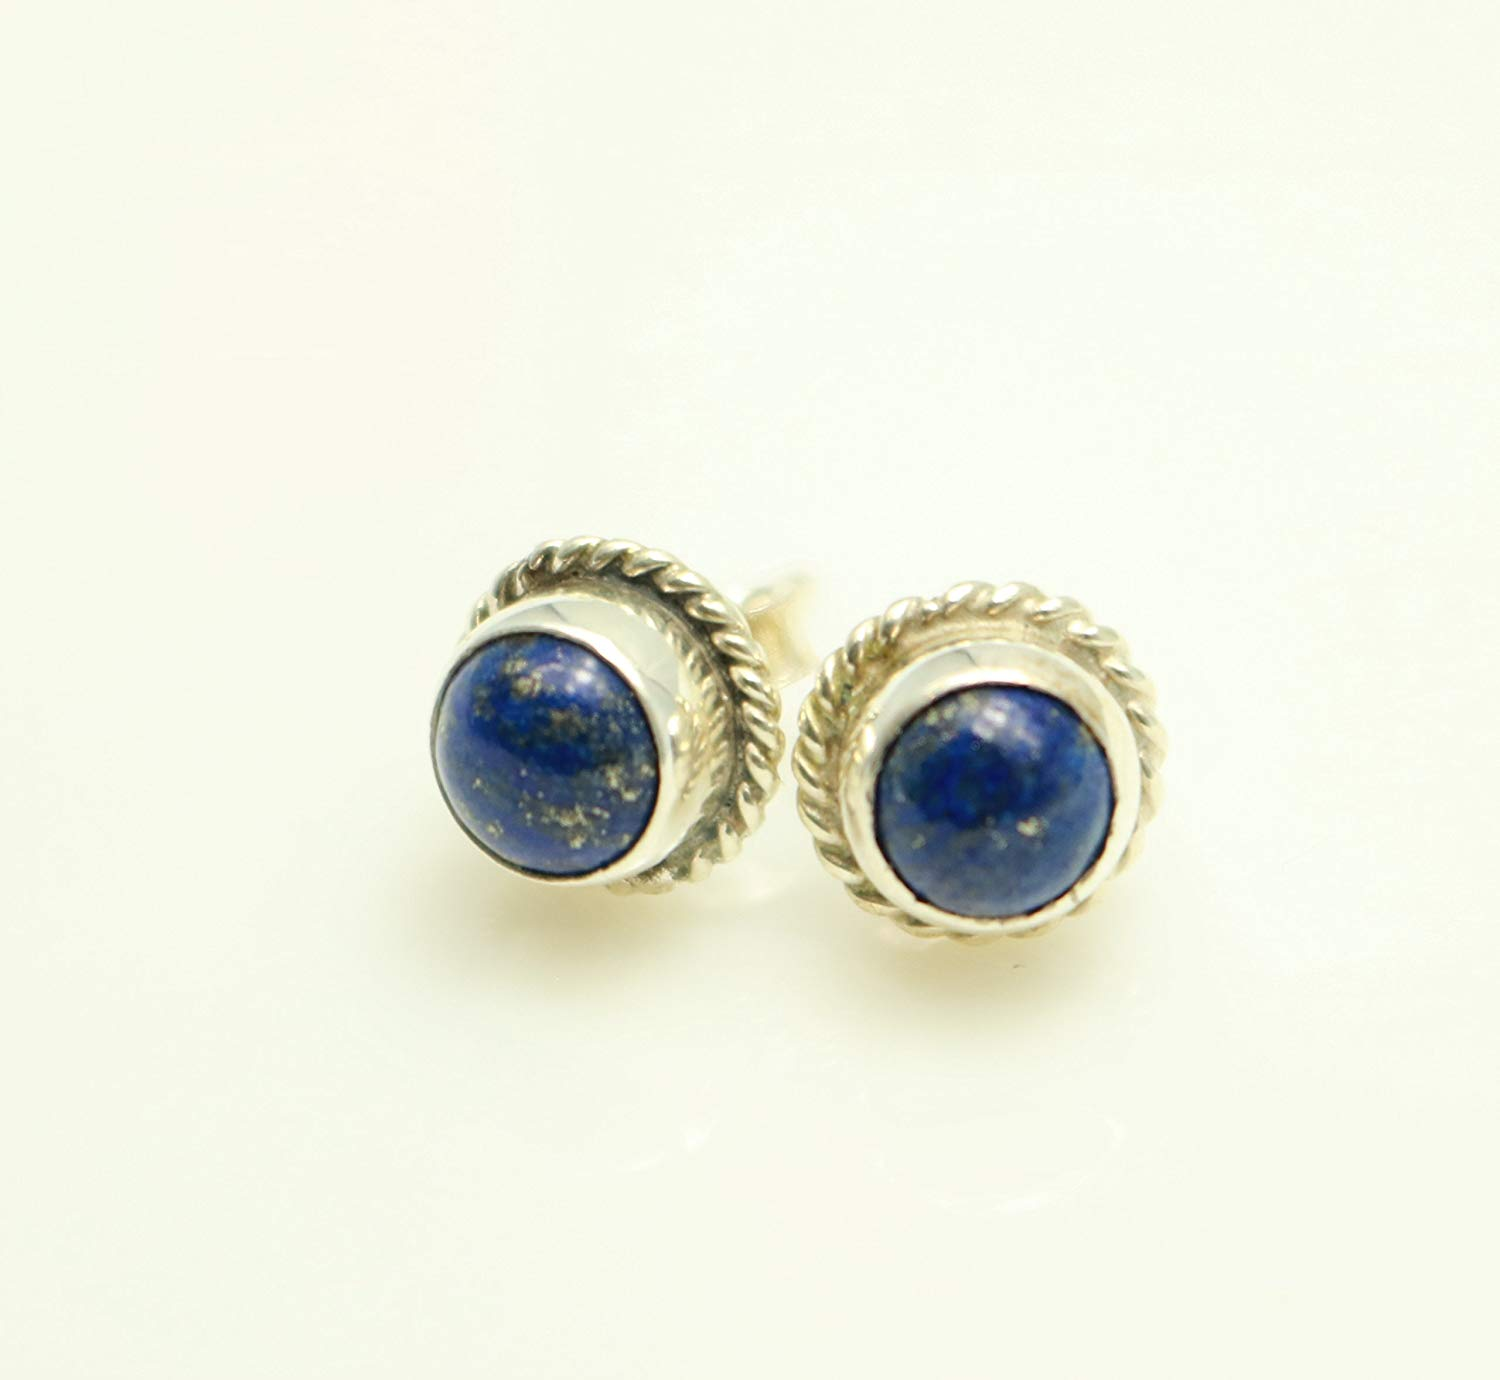 Lapis Lazuli Gemstone Earrings Handcrafted, Semi Precious Stone by Handmade Studio